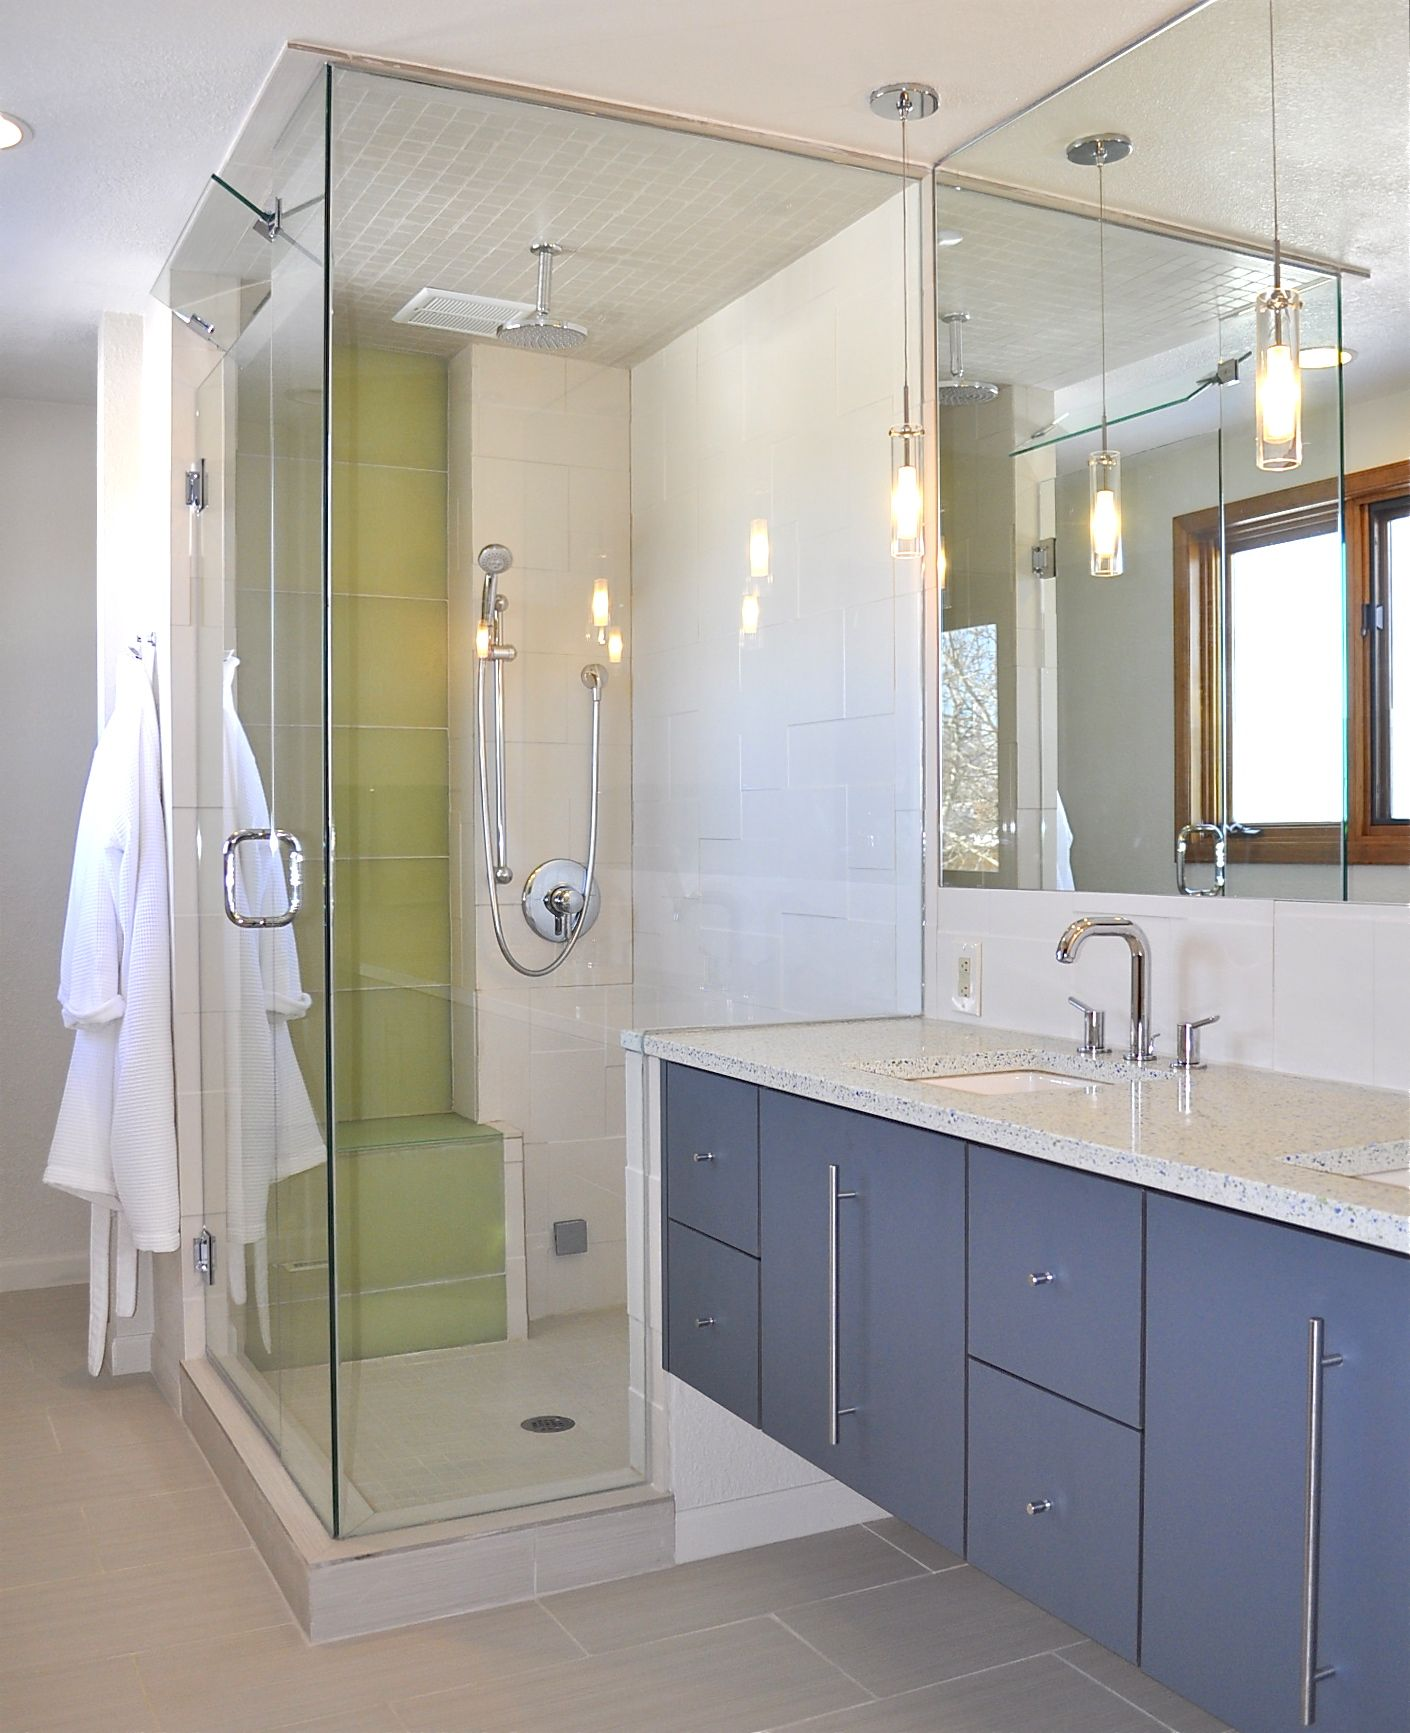 small sink vanity for small bathrooms%0A Bathroom Cabinet   Cool Tiny Bathroom Remodels With Simple Polished Chrome  Faucet Double Handle On Elegant